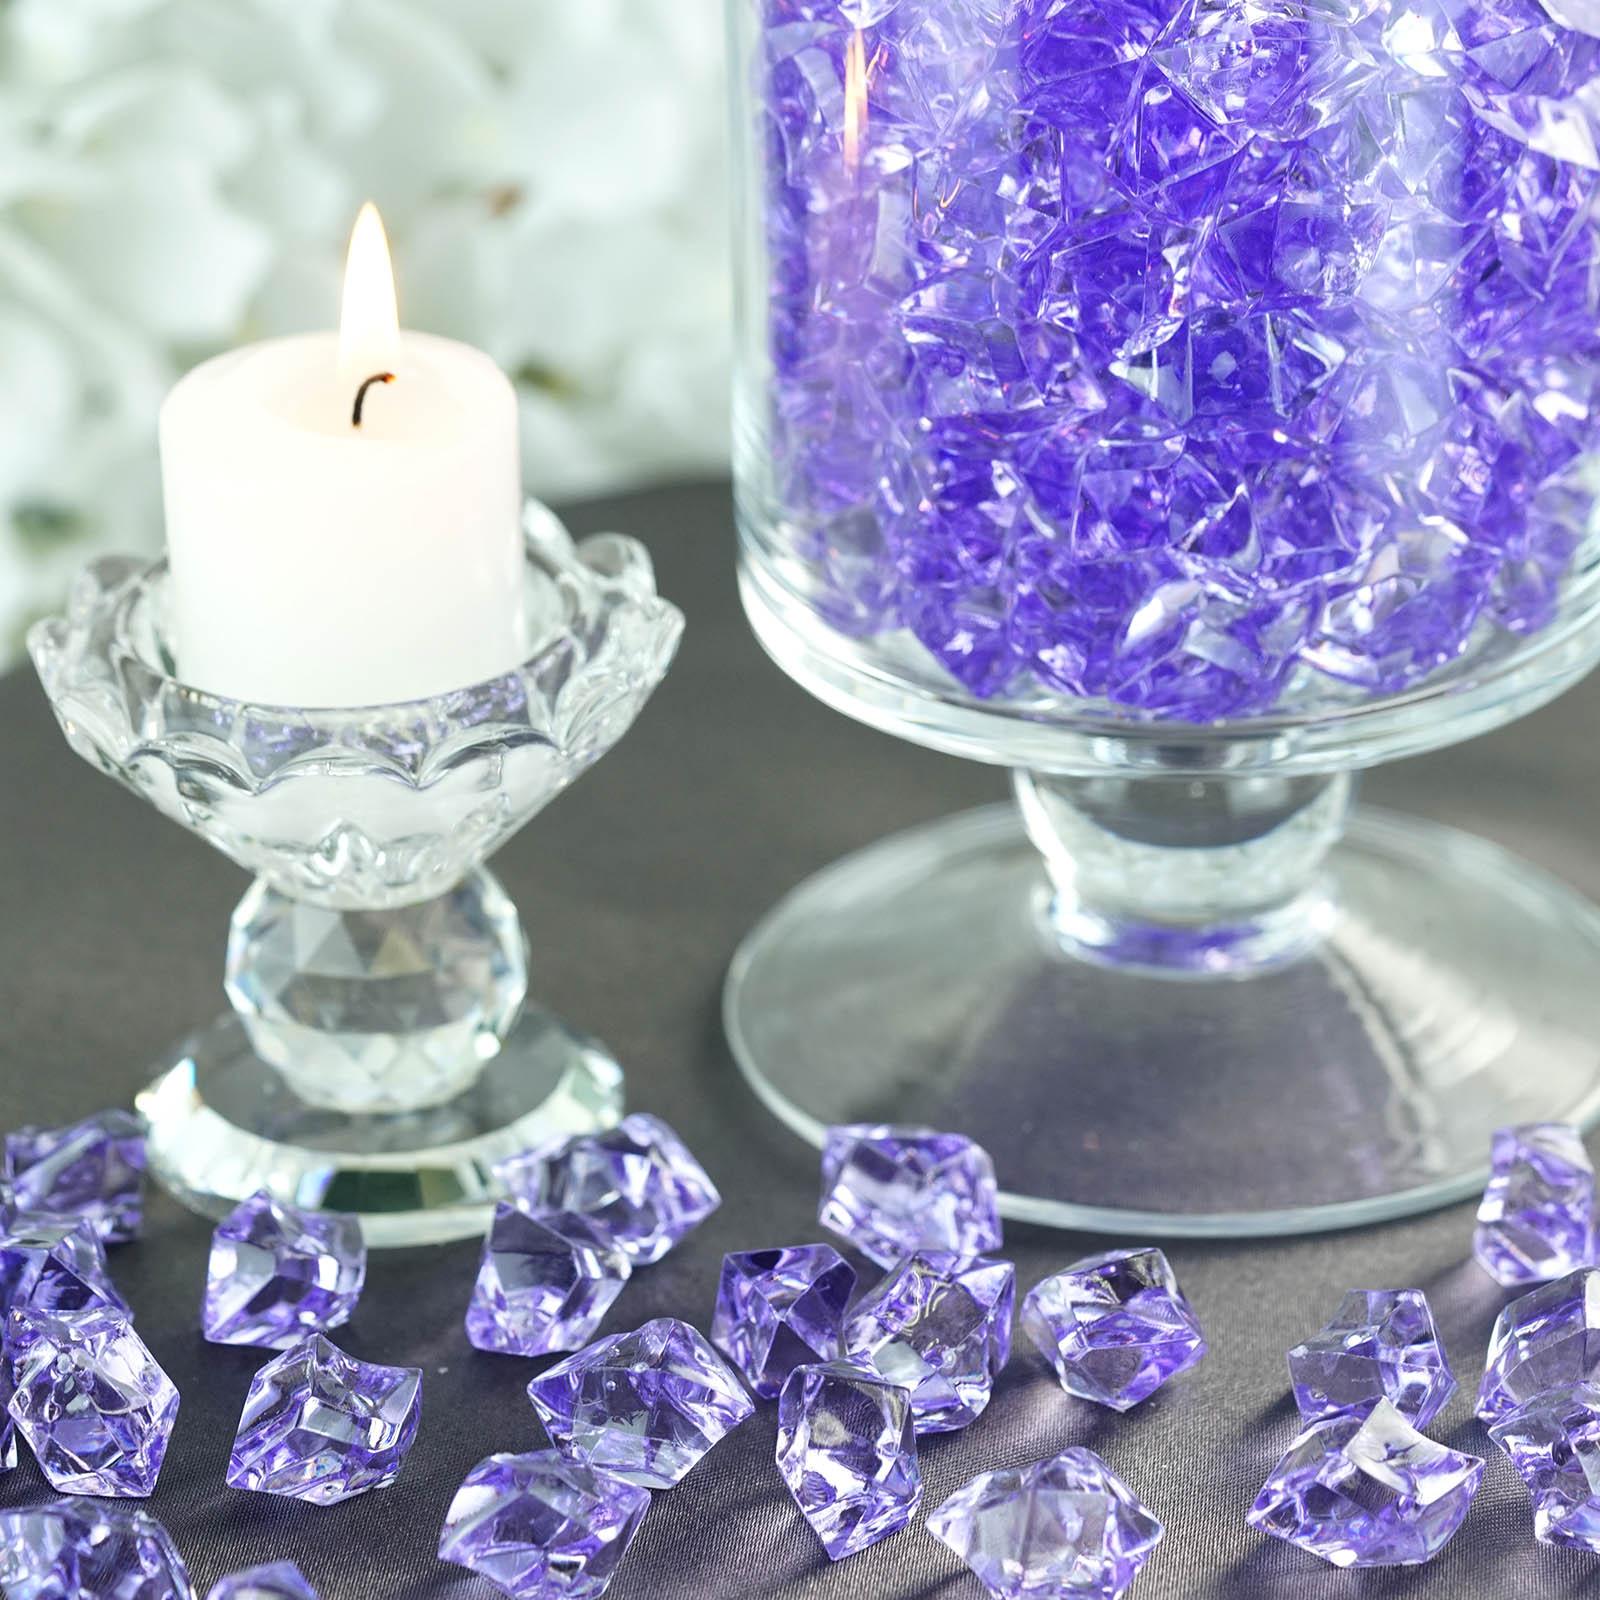 300-Acrylic-Ice-CRYSTAL-LIKE-Pieces-Wedding-Centerpieces-Decorations-Supplies thumbnail 38